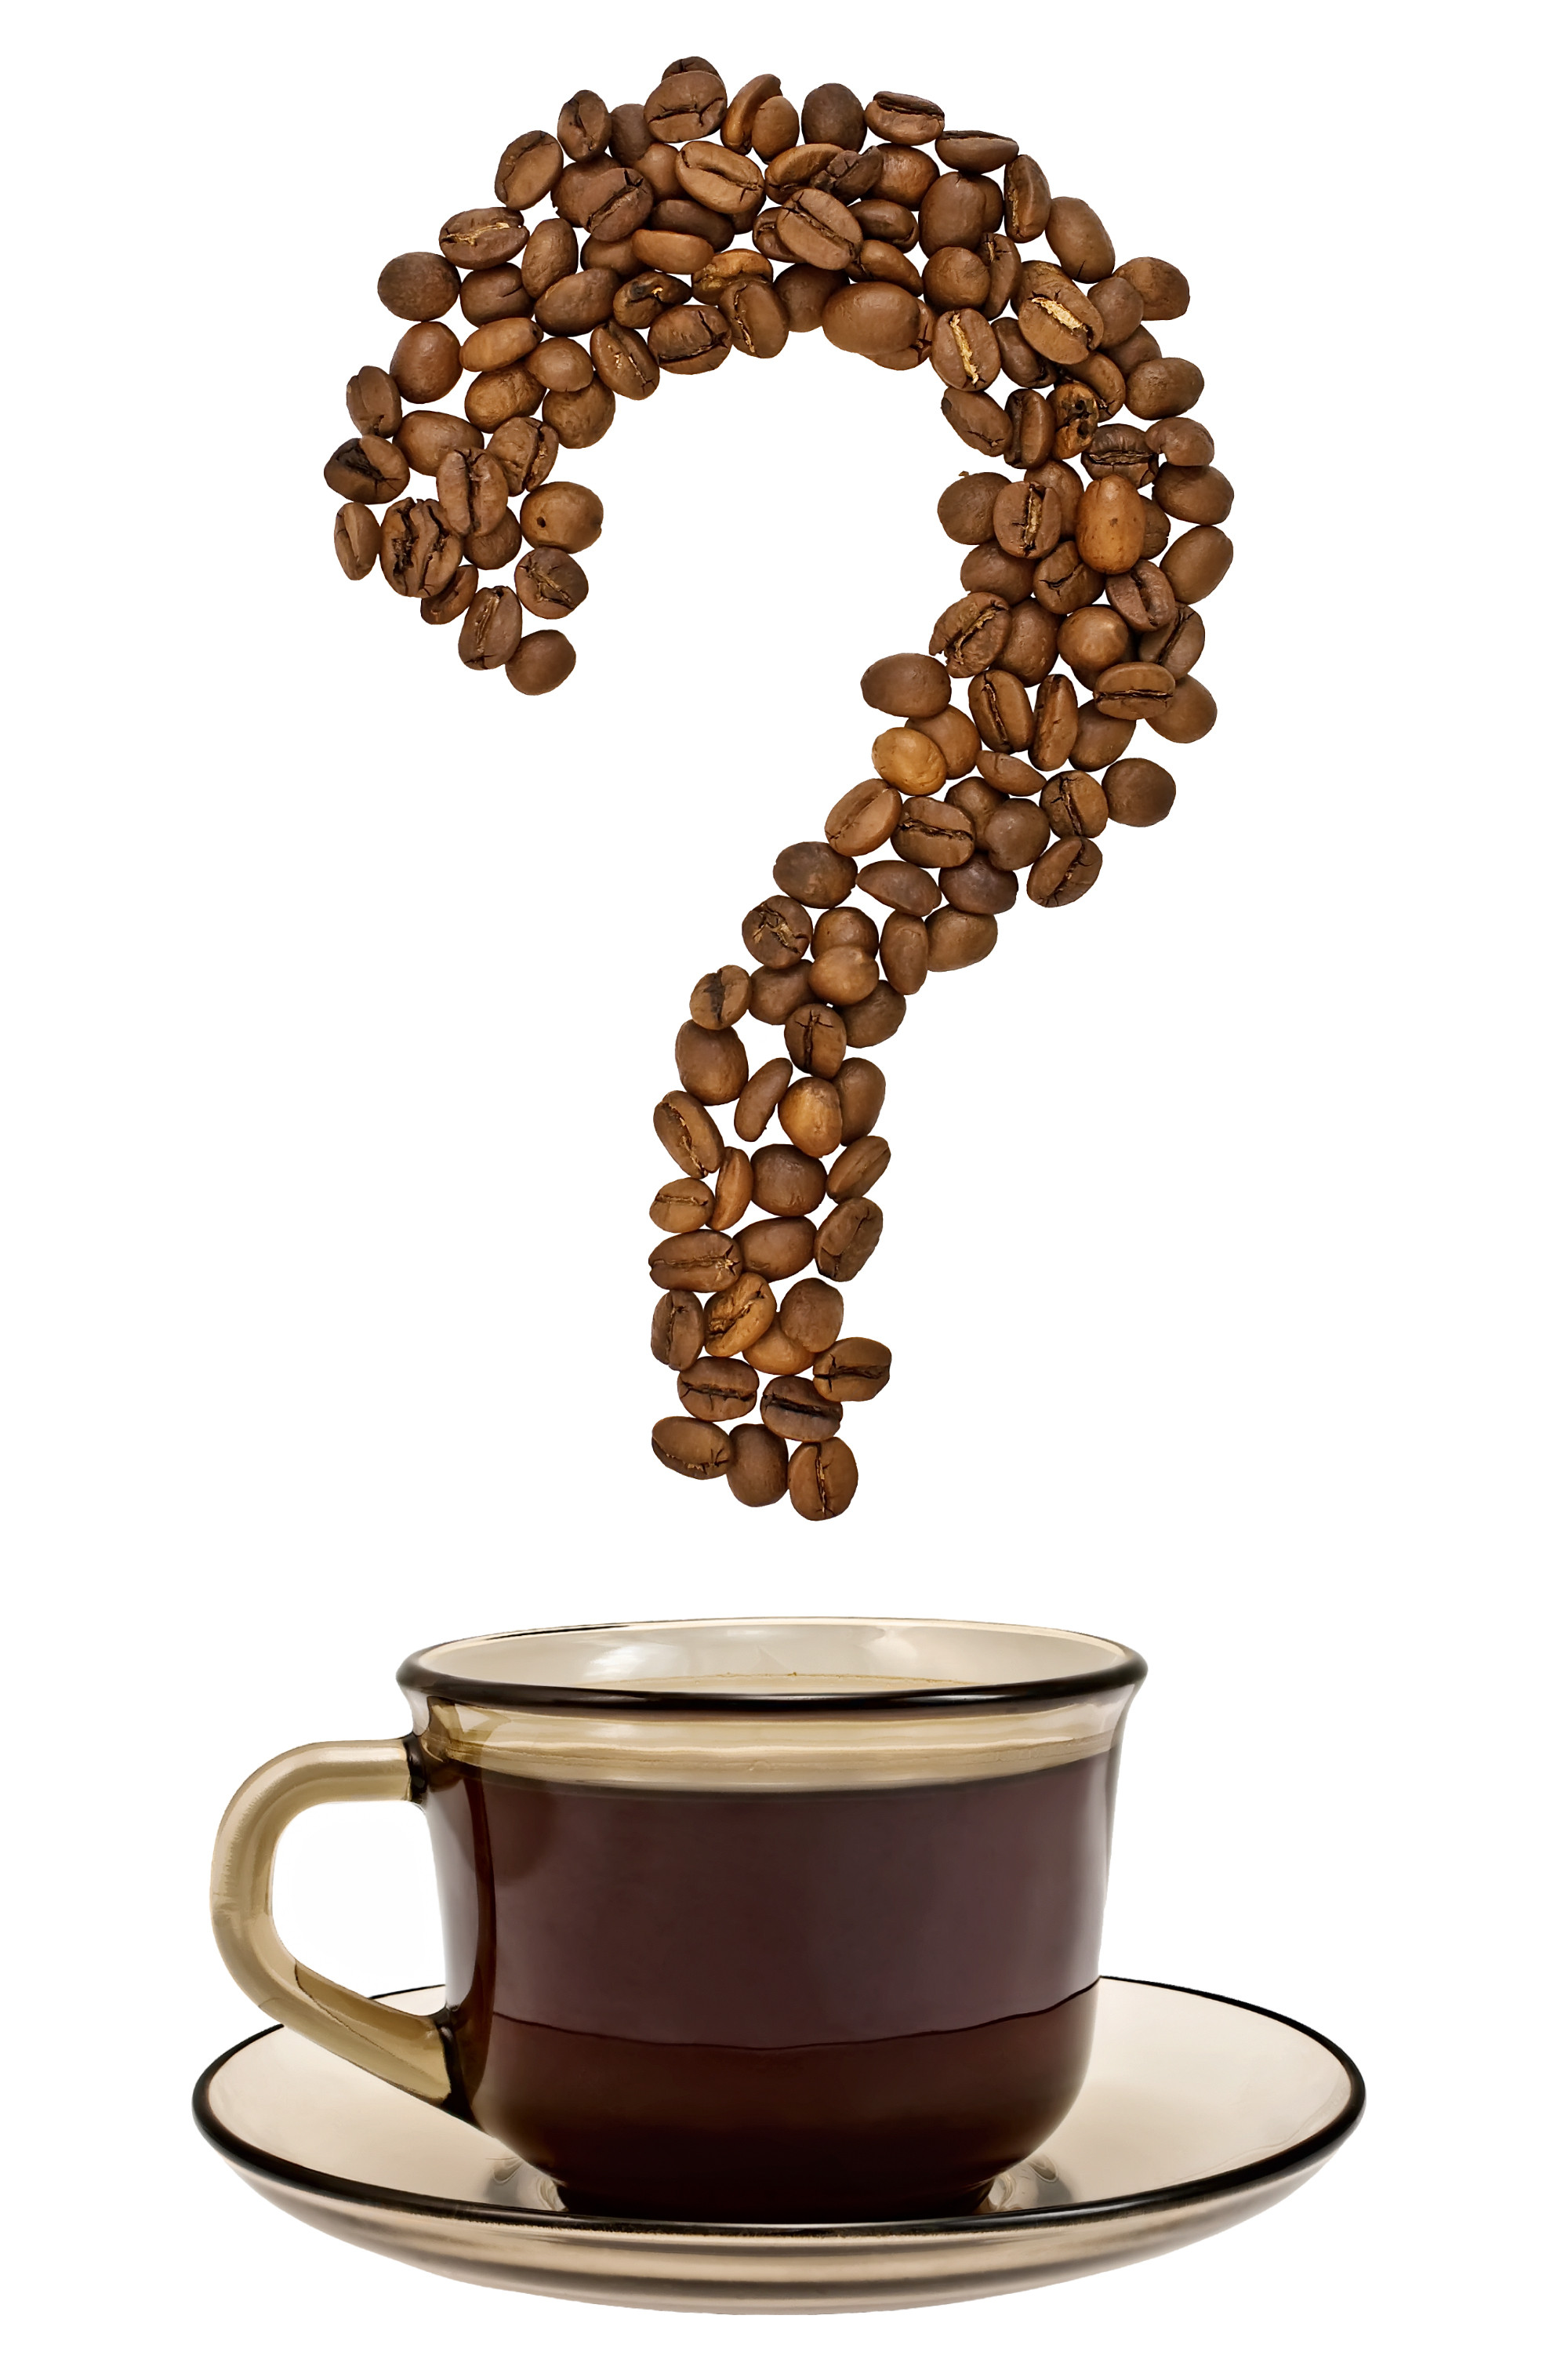 Questions | Olives and Coffee